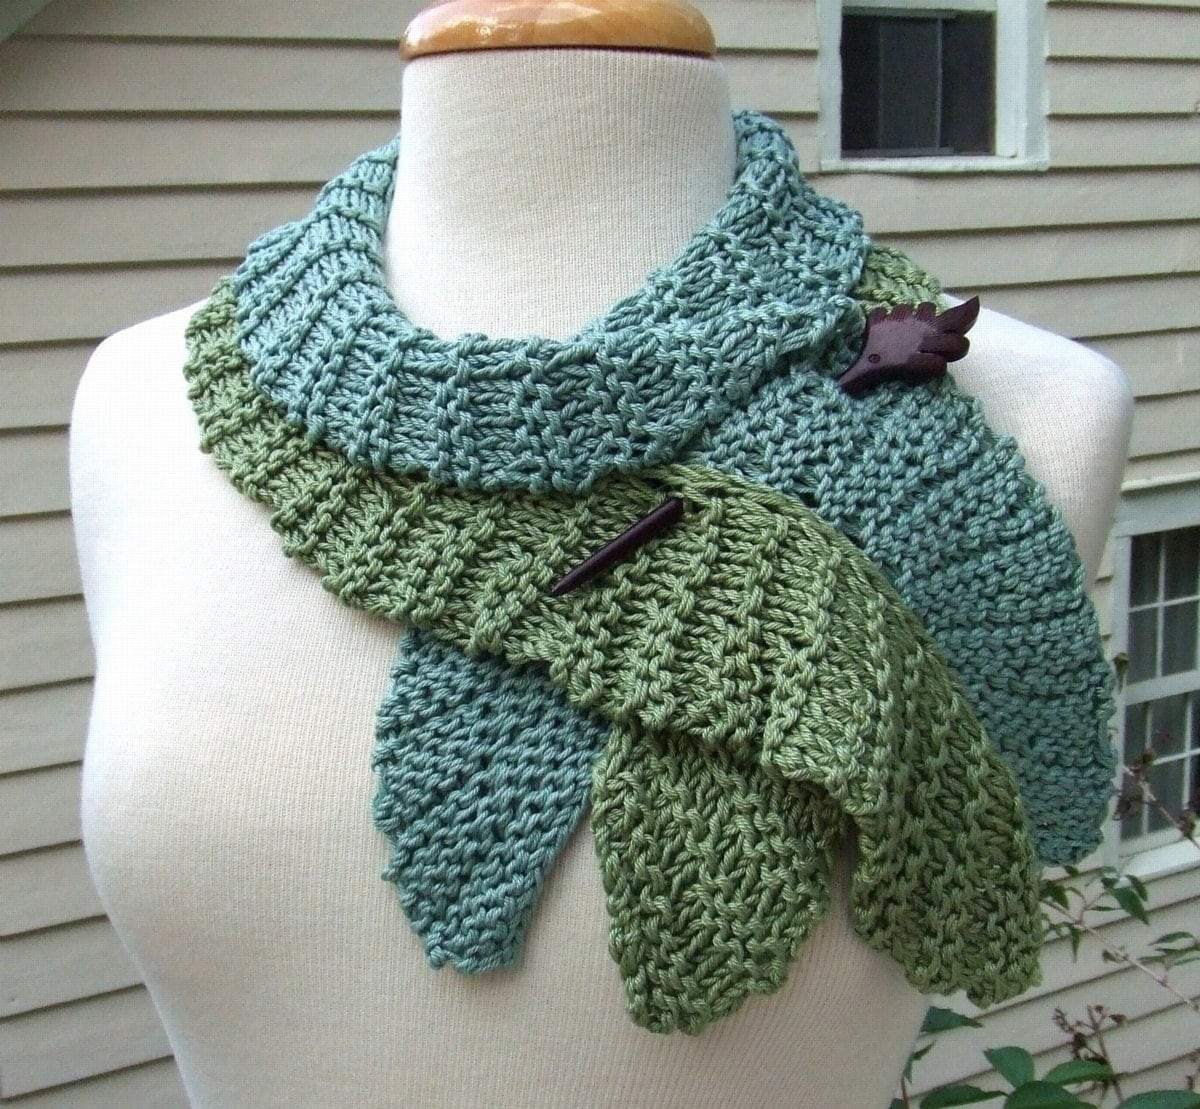 Knitting Patterns For Scarfs : Knitting Pattern-Twirling Leaf Scarf knit flounce wavy